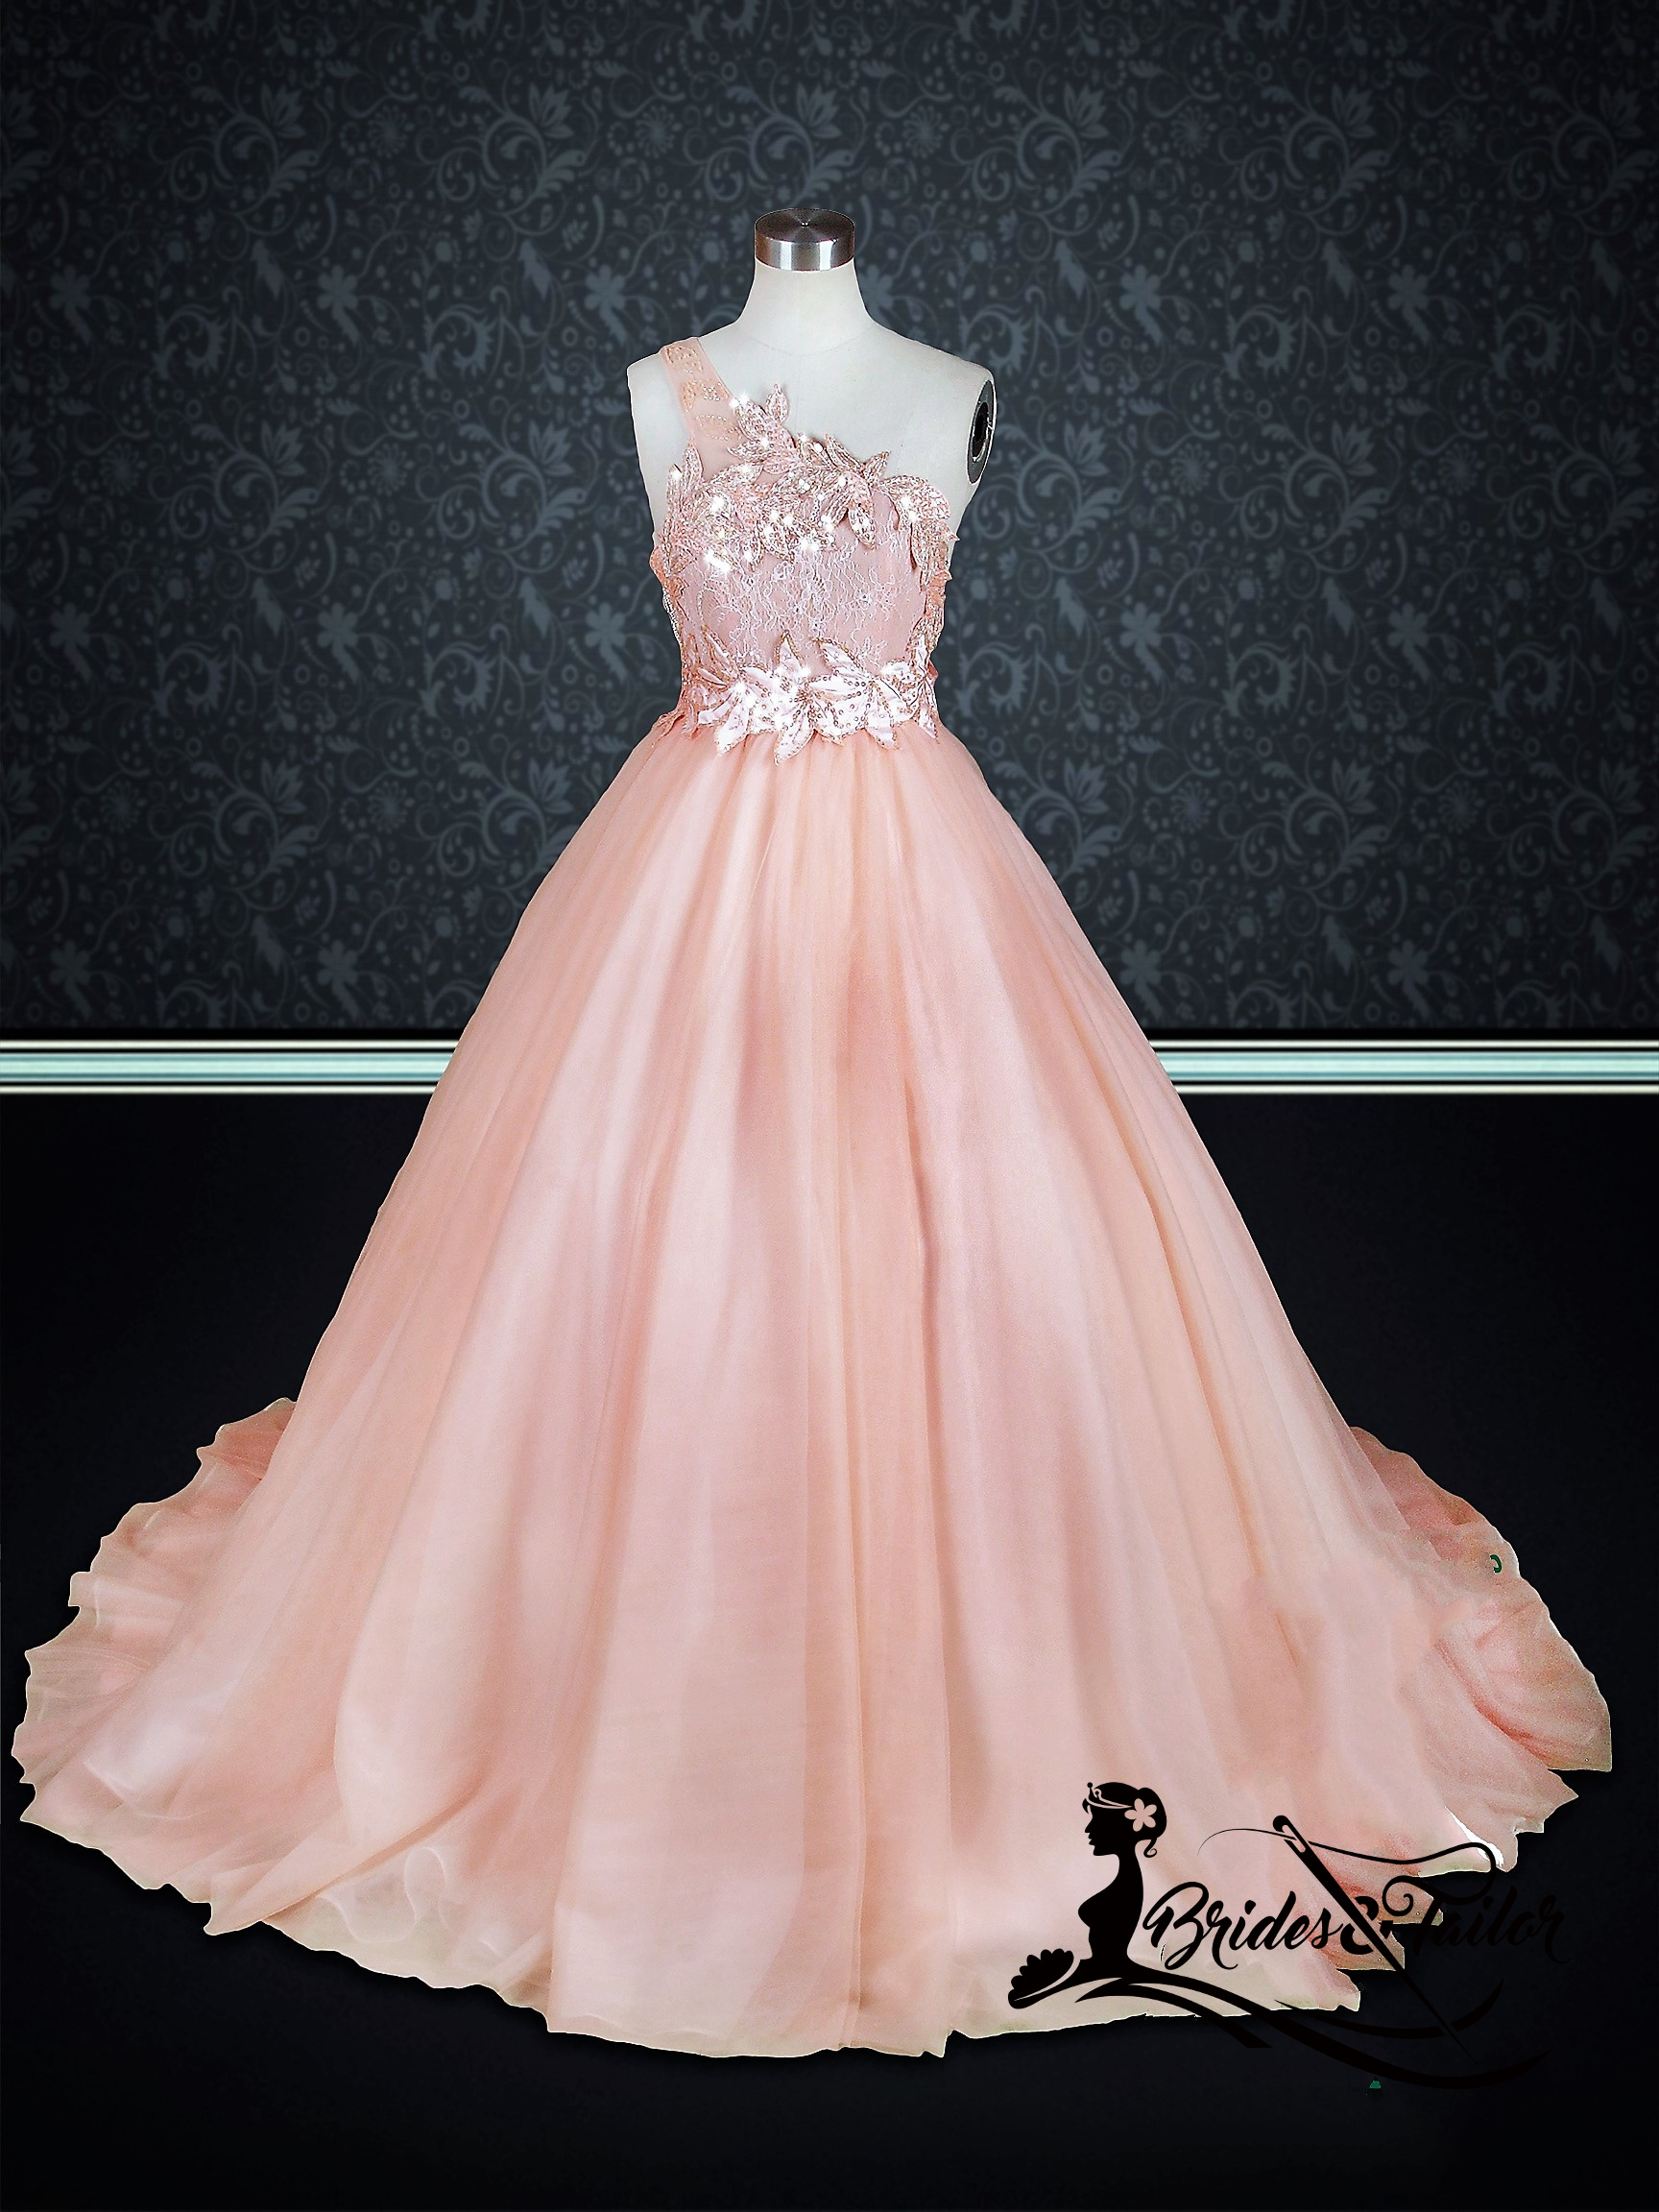 Peach Colored Wedding Dress Brides & Tailor